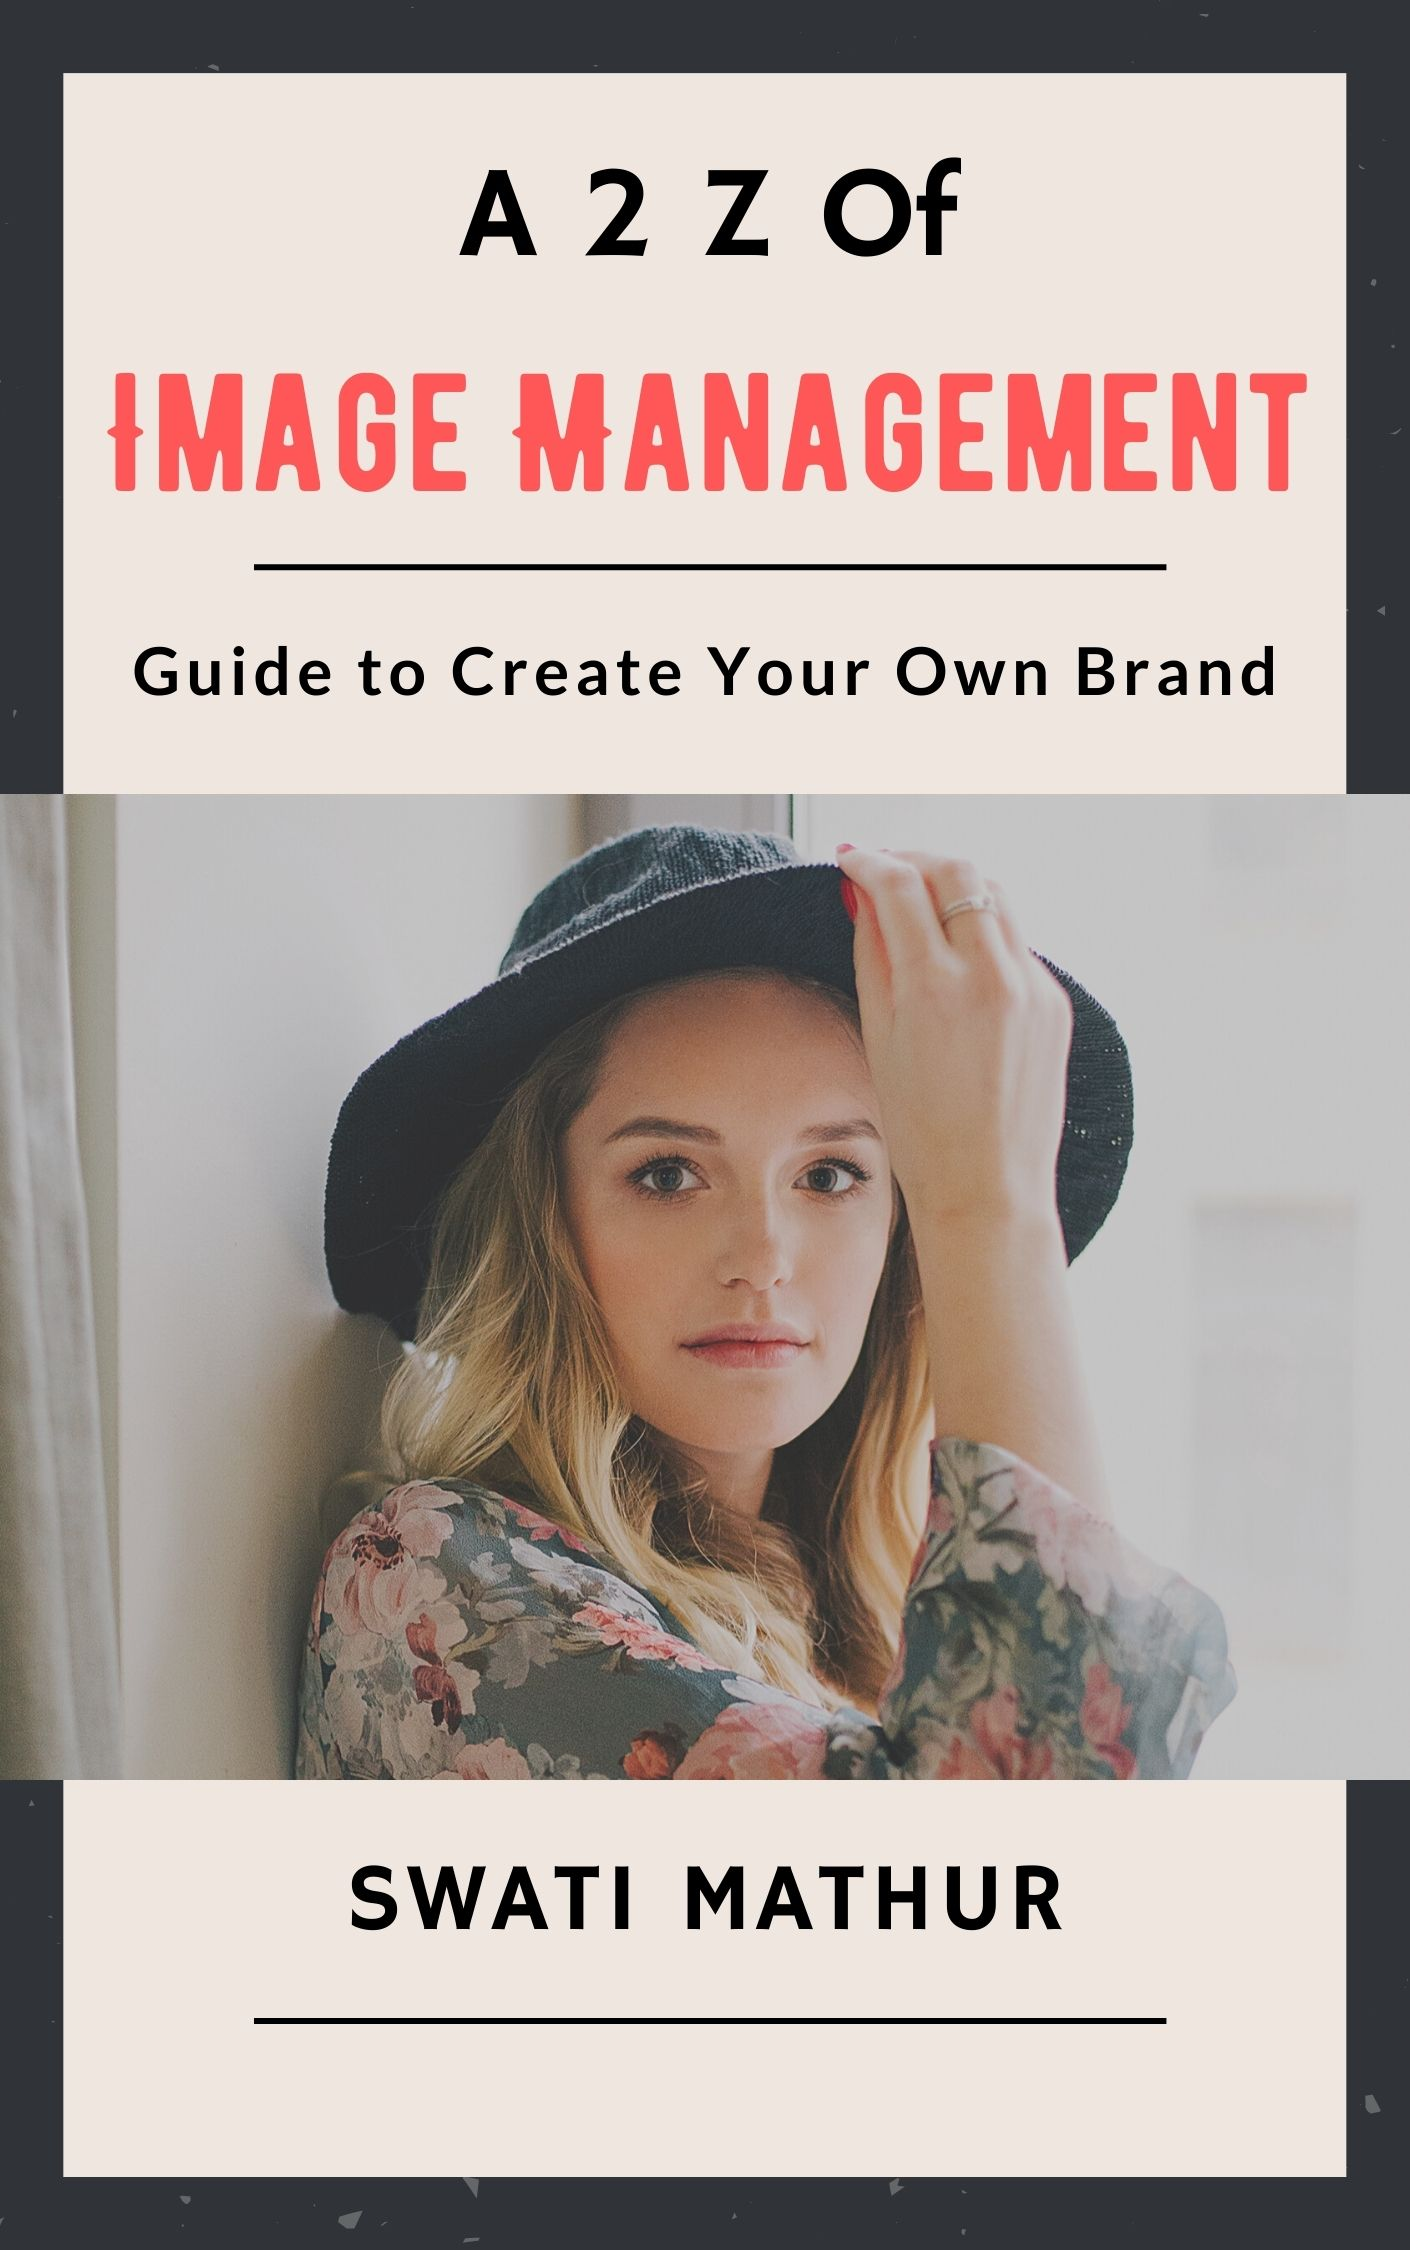 https://www.theblogchatter.com/download/a2z-of-image-management-by-swati-mathur